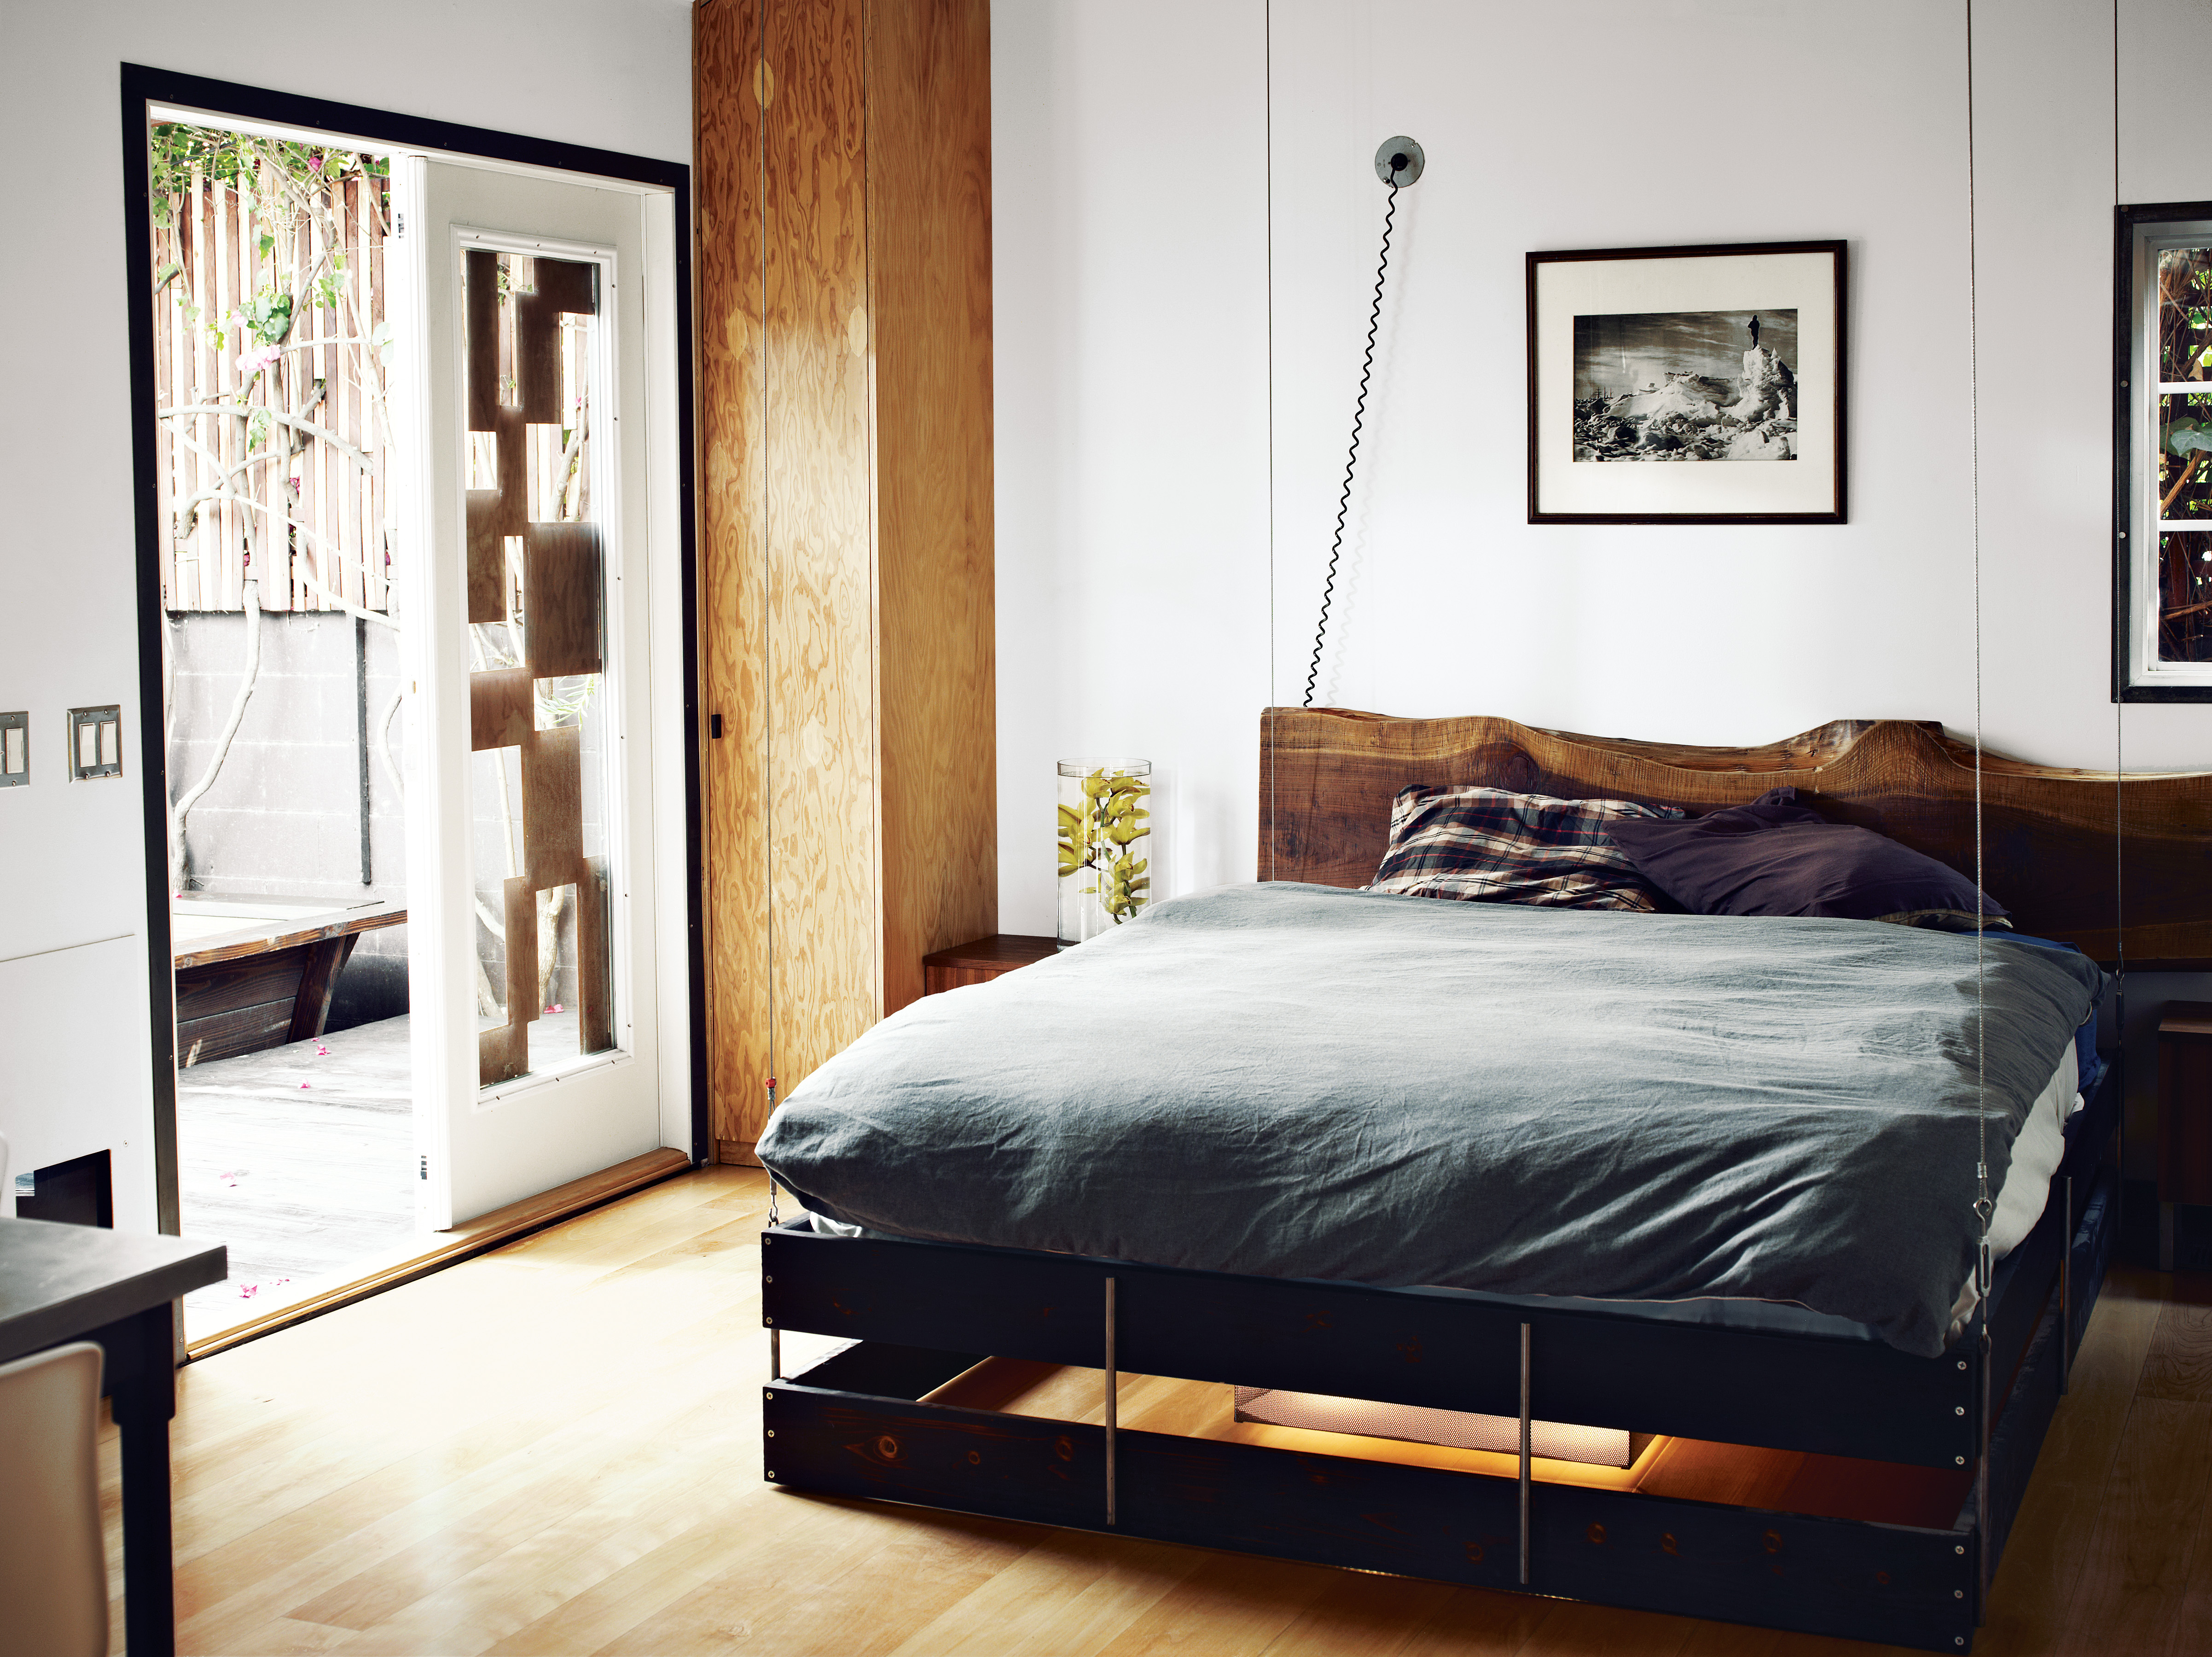 How mad men 39 s vincent kartheiser lives coco lapine - Mens small bedroom ideas ...